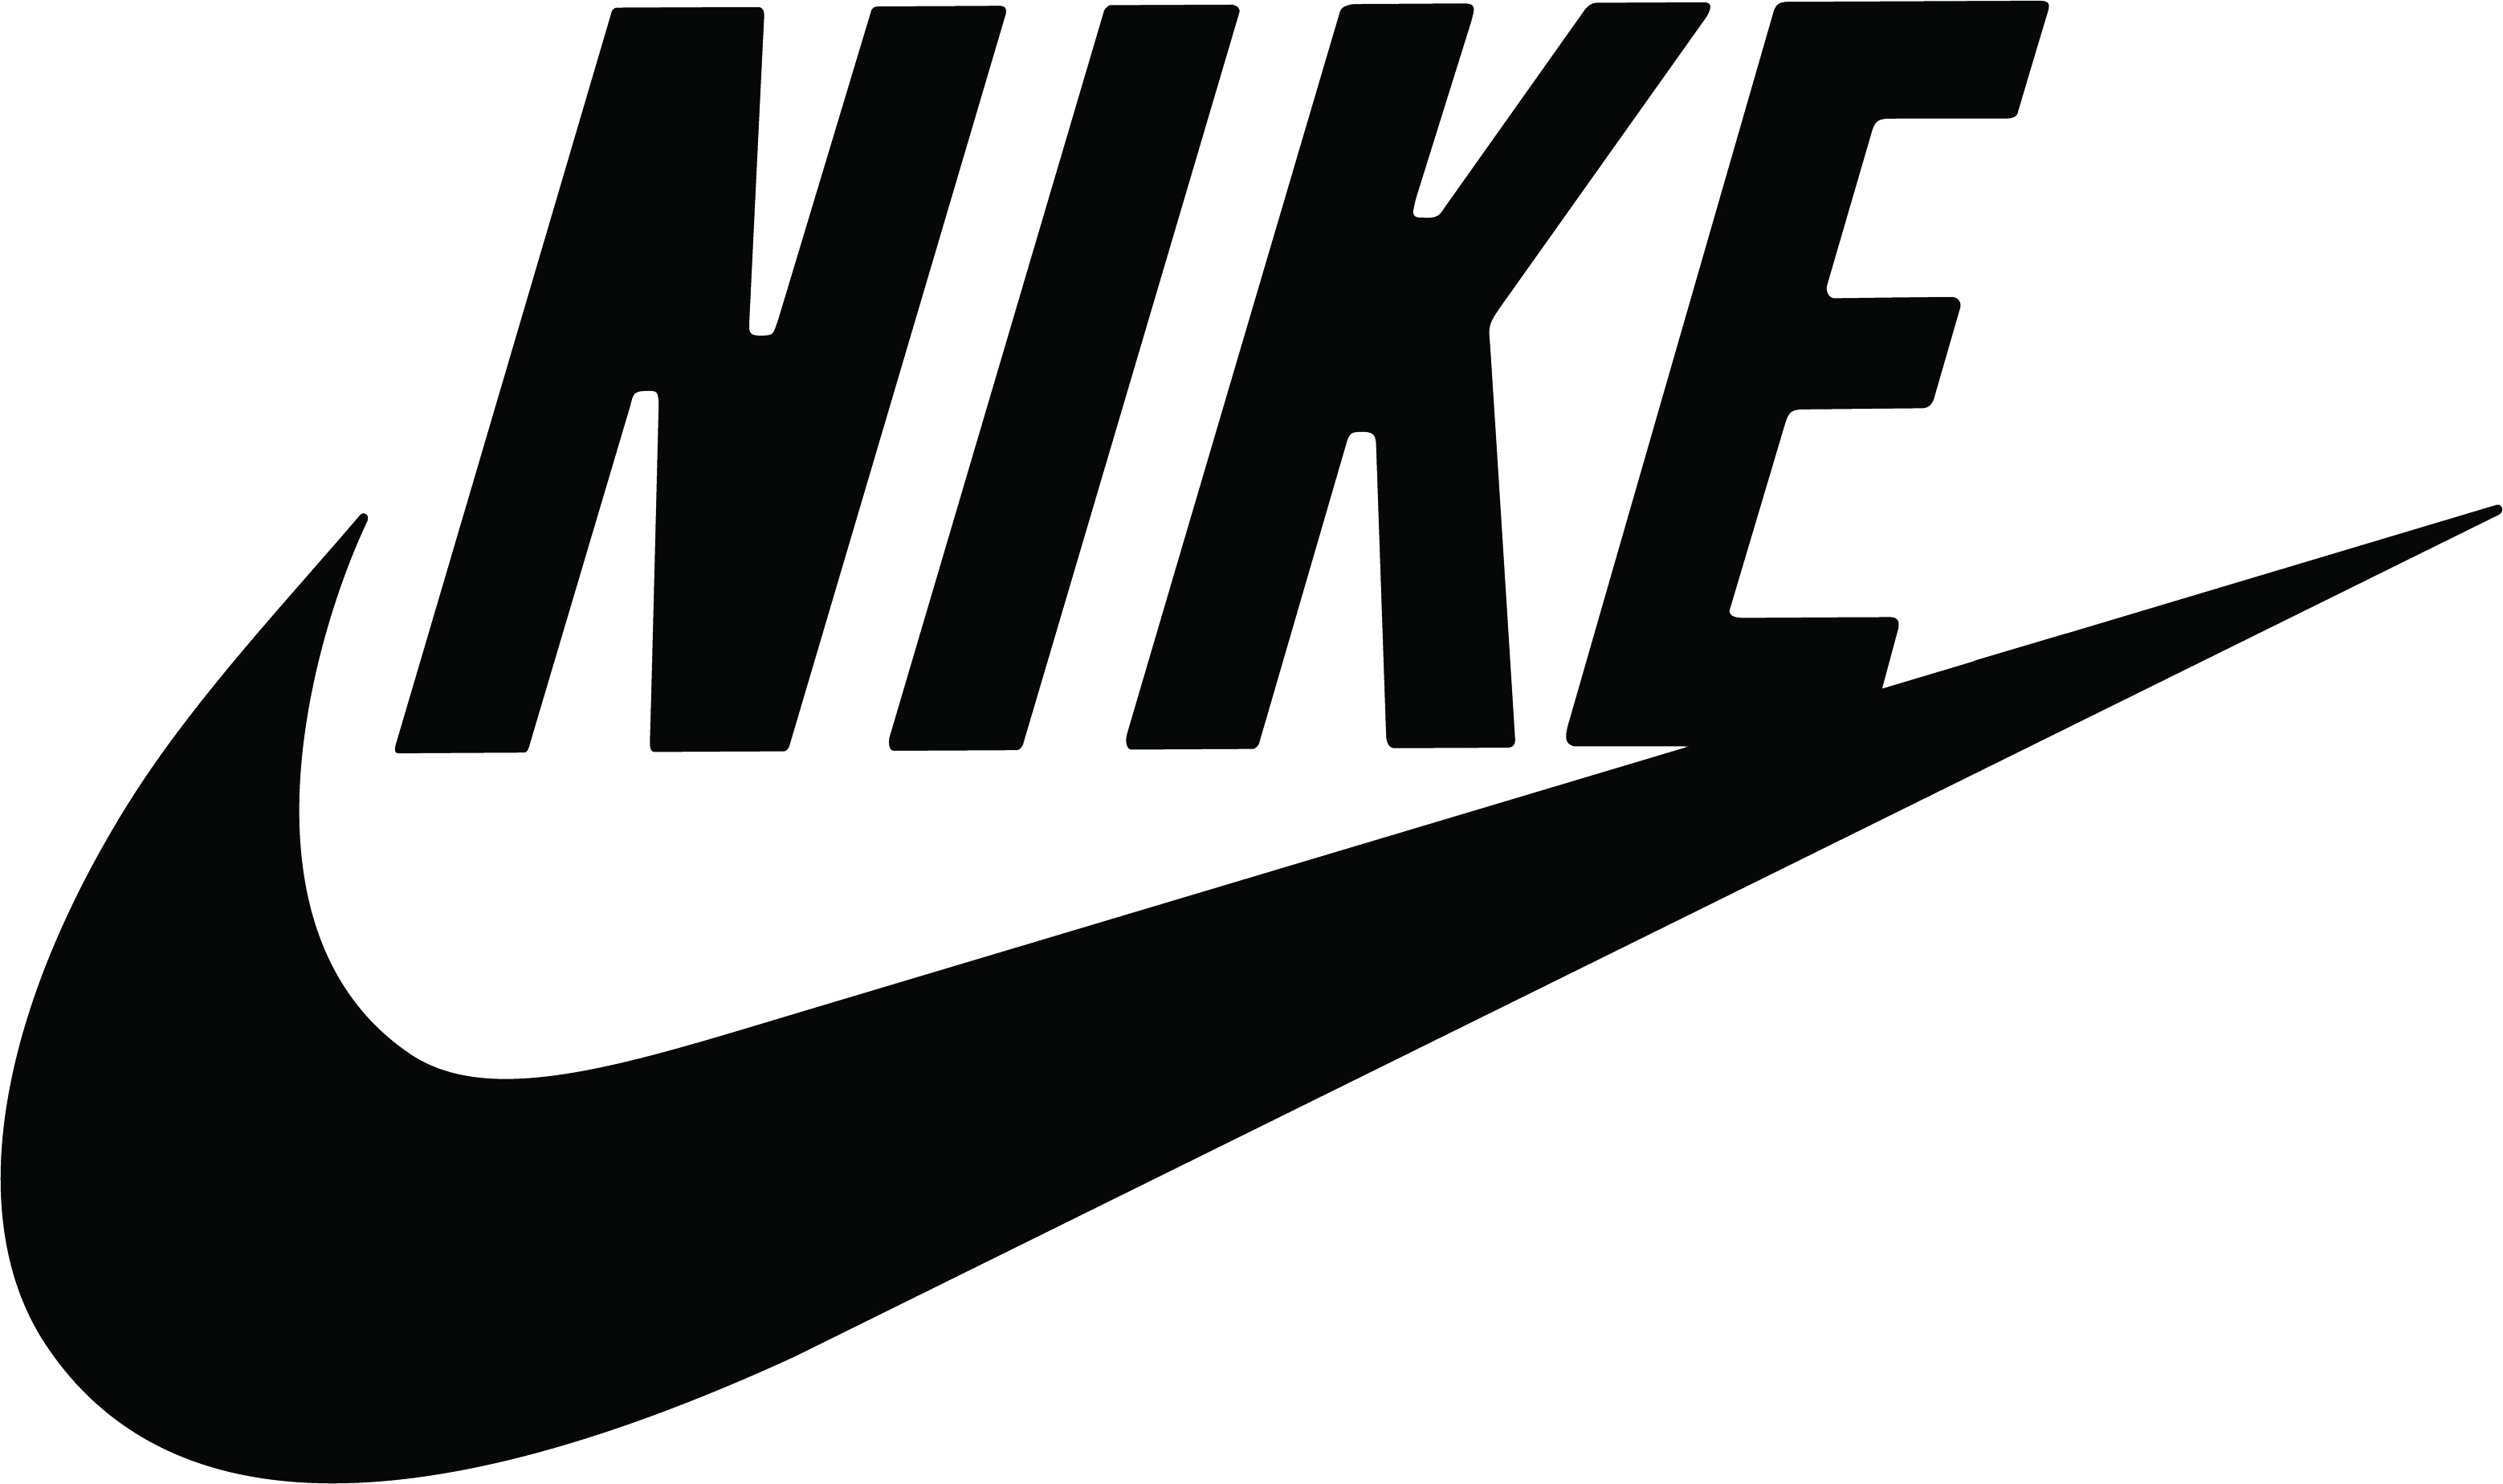 Nike .png. Hd png transparent images